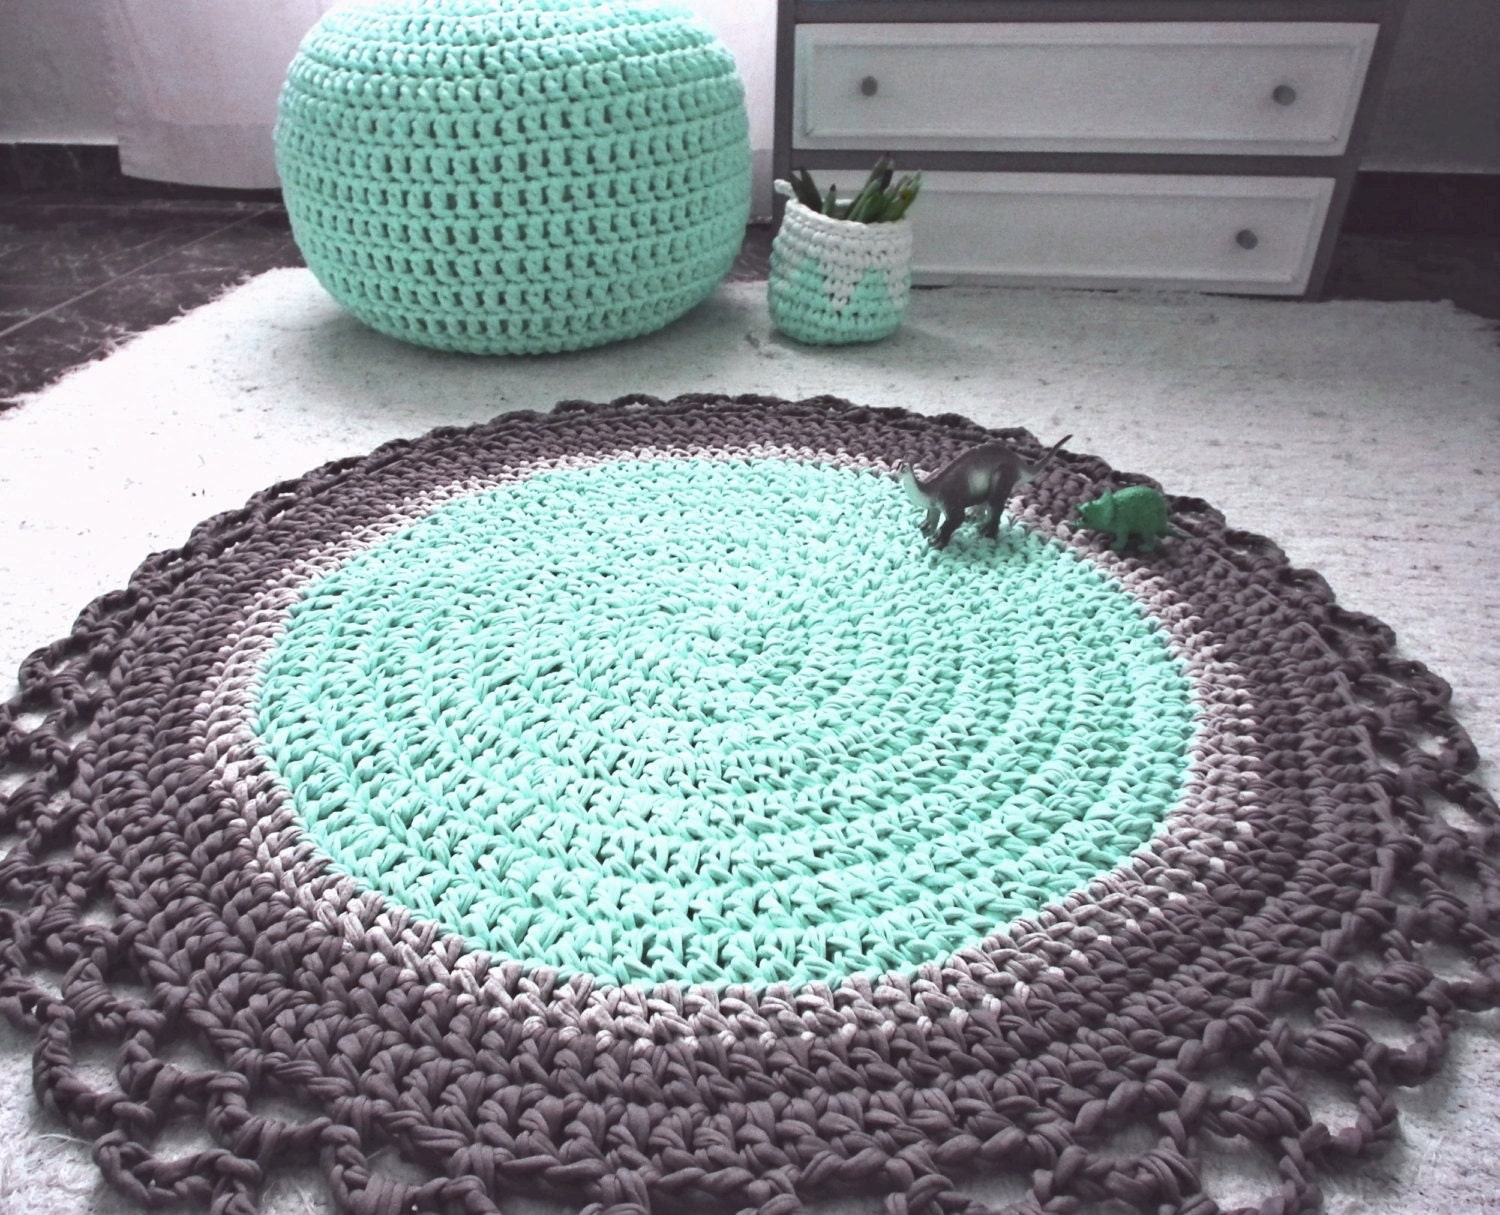 Crocheting Round Rugs : Crochet Round Rug Babyrooms Round Rug Nursery by LoopingHome